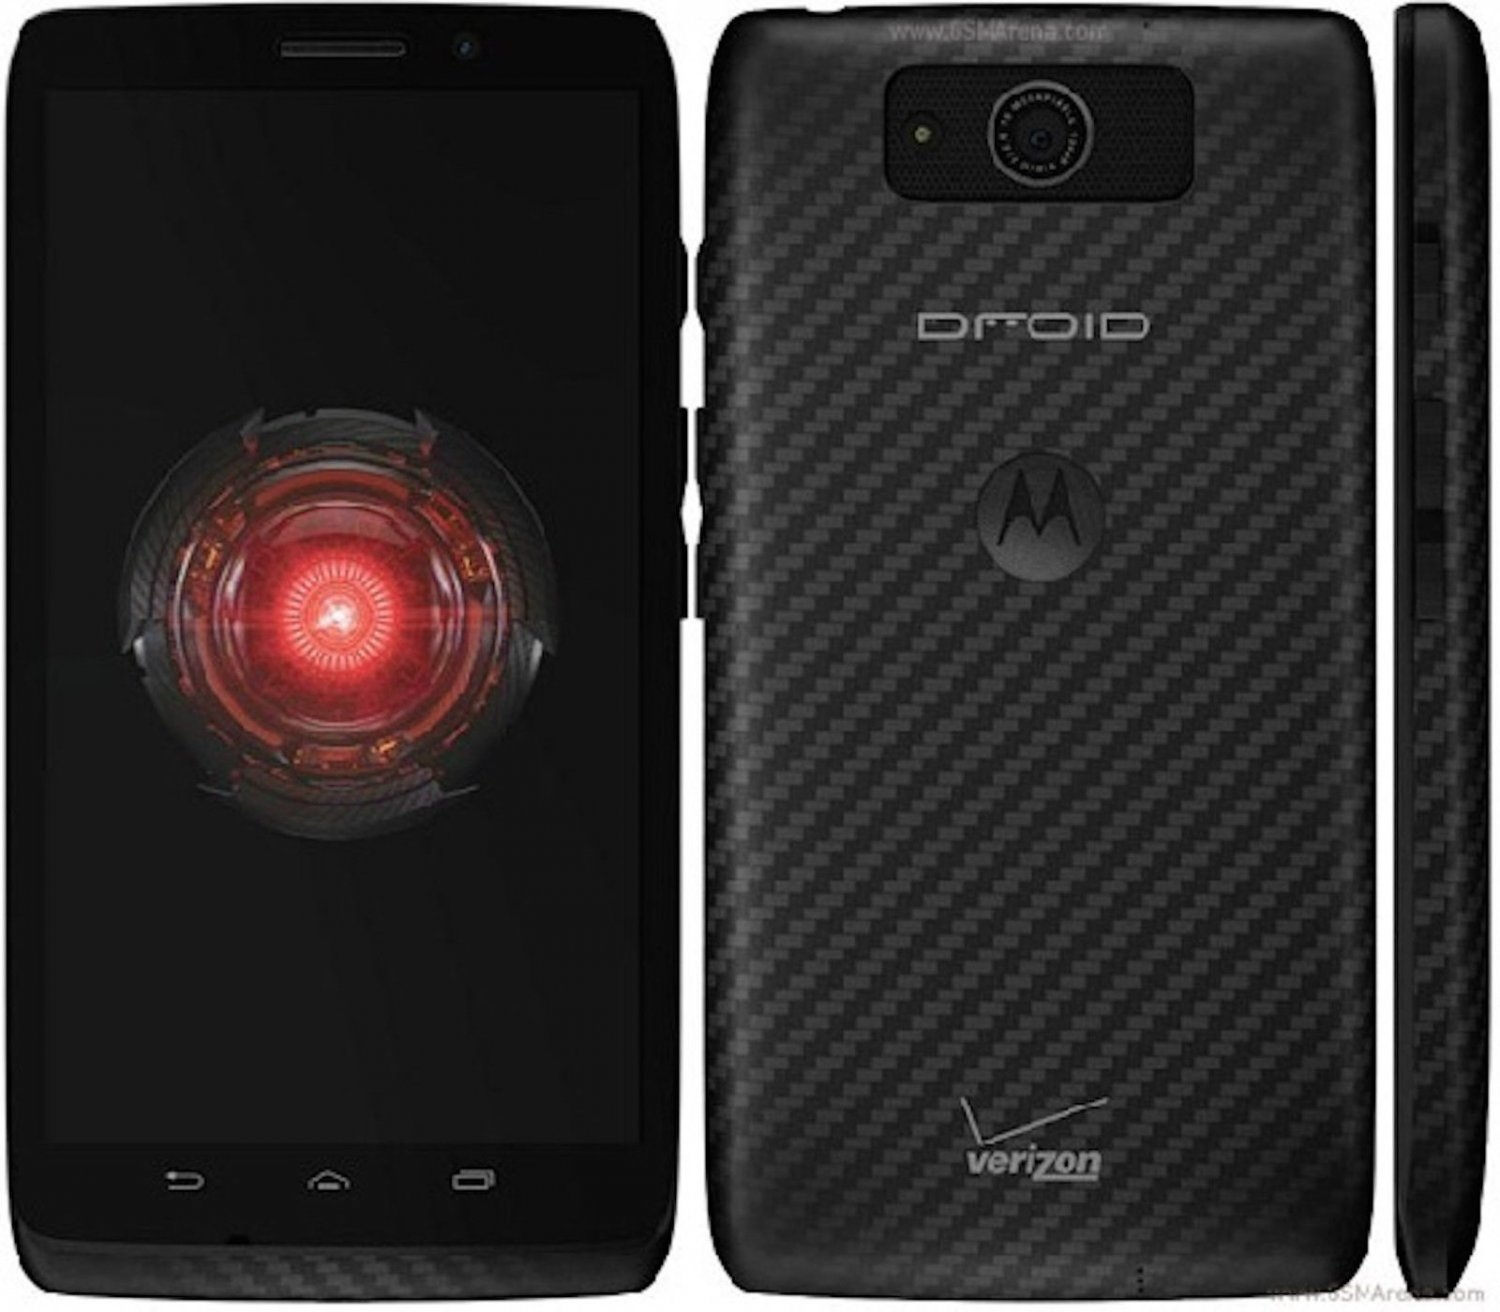 Remove SIM Card - DROID Mini / DROID Ultra / DROID MAXX by Motorola. Instructions on inserting/removing your SIM can help with activation issues/errors, browser connection problems and a blank/frozen screen.